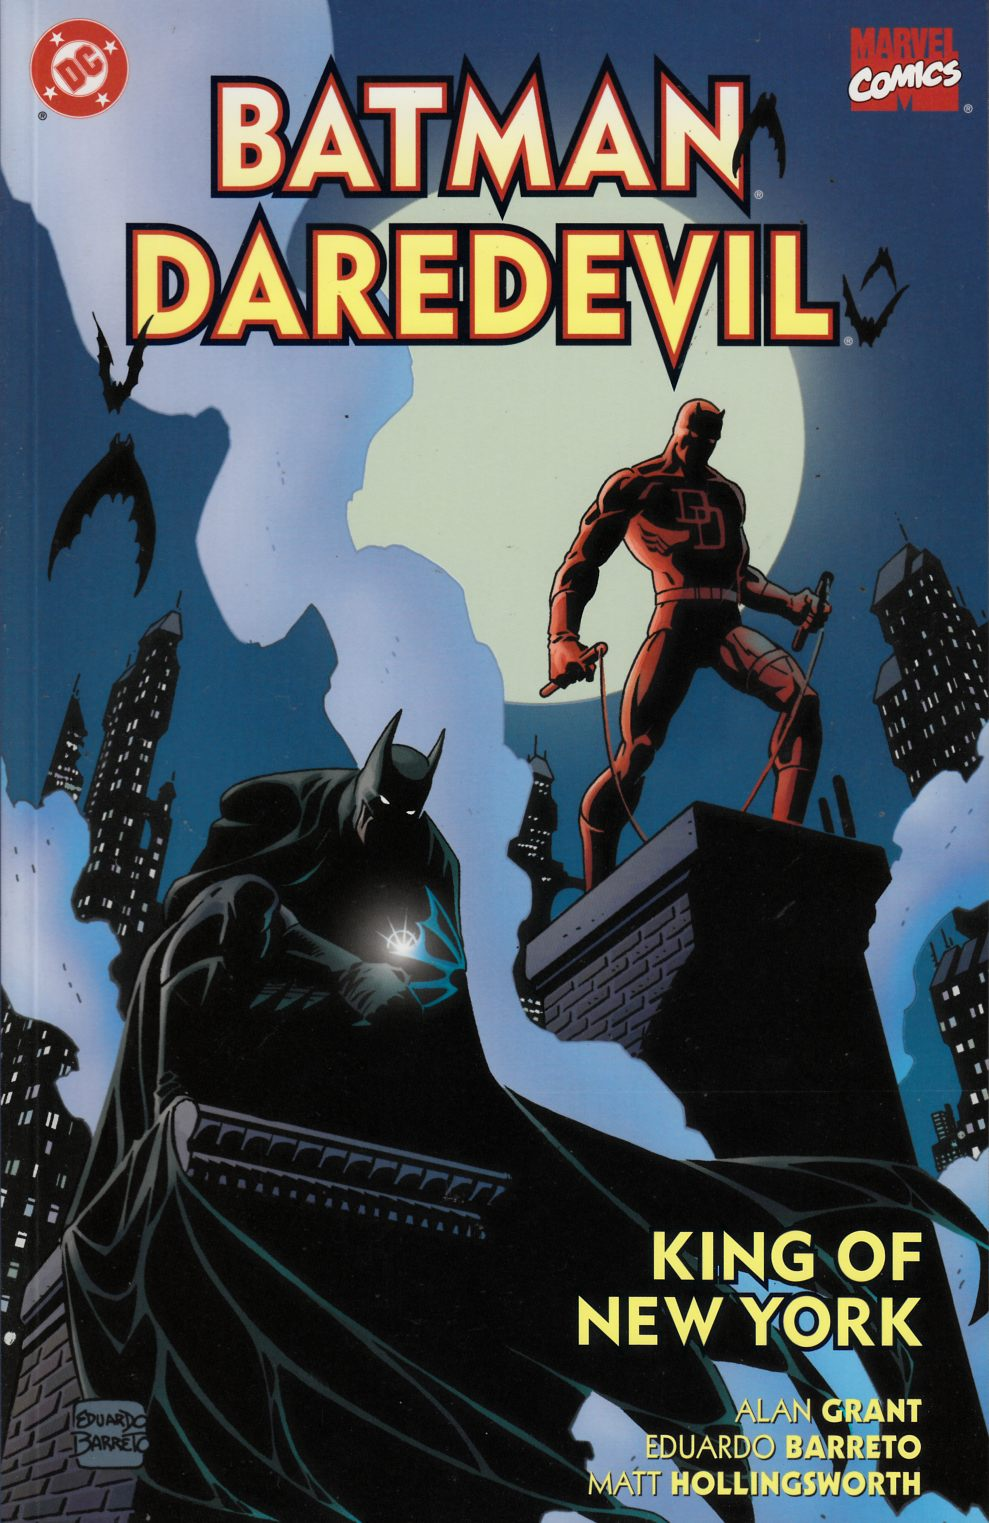 Batman Daredevil King of New York (One Shot) Near Mint (9.4) [DC Comic] THUMBNAIL